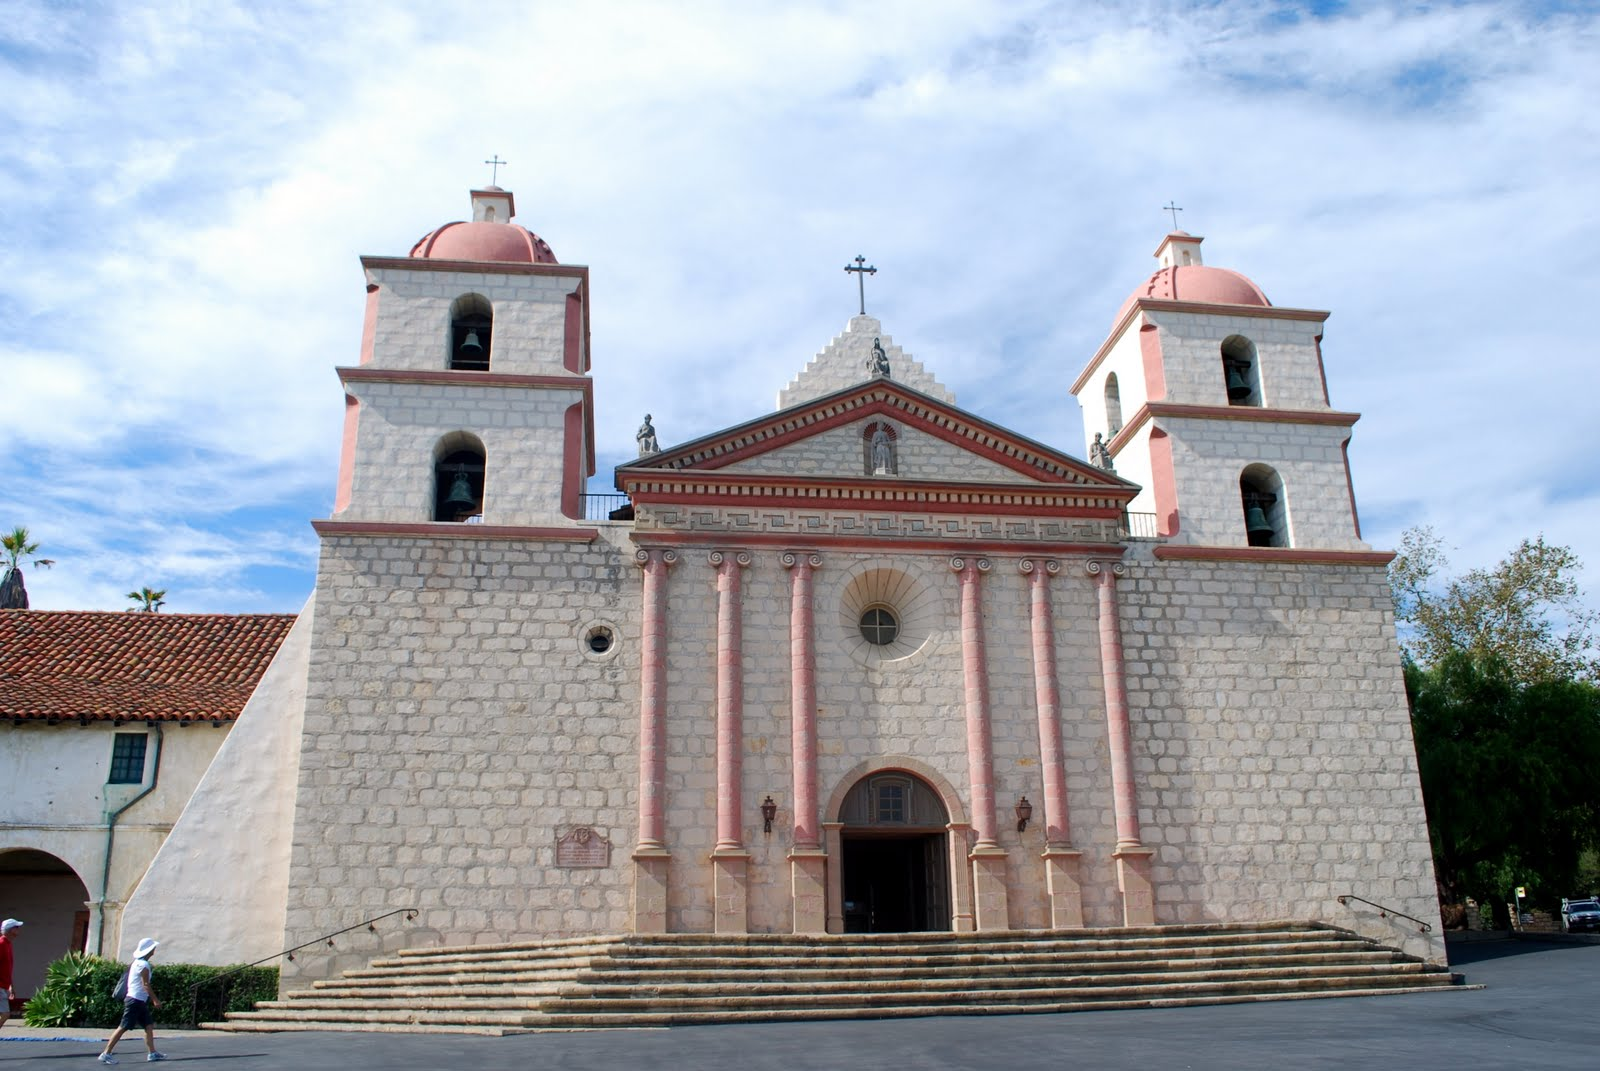 Santa barbara mission church pictures to pin on pinterest for Case in stile missione santa barbara